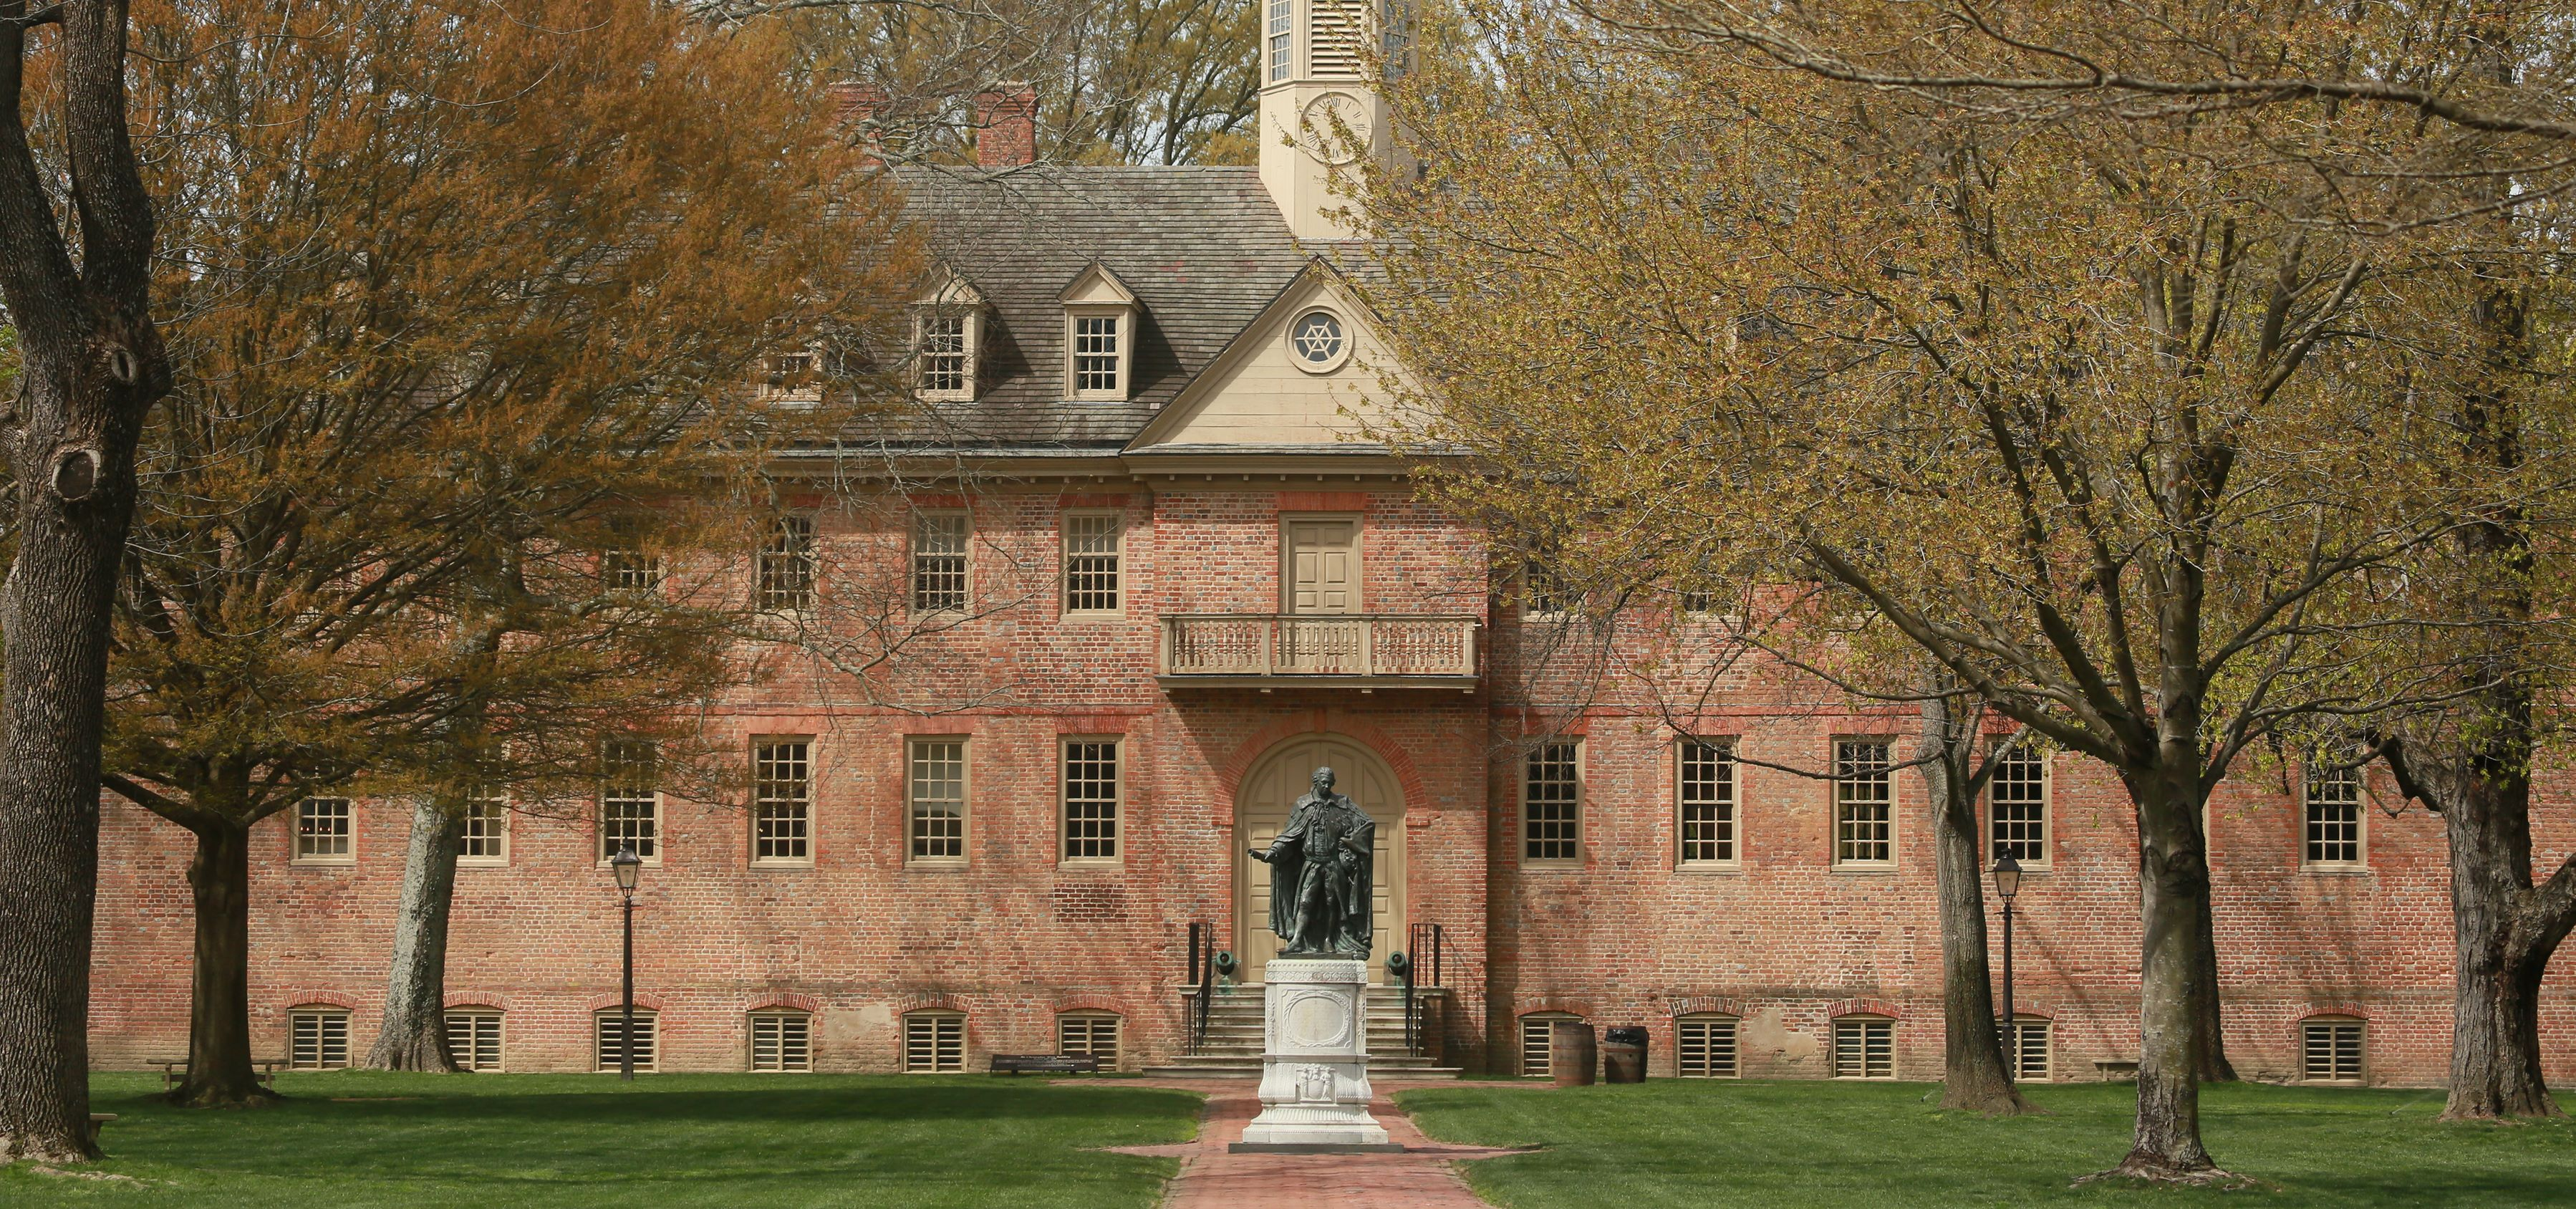 College of William and Mary Wren Building